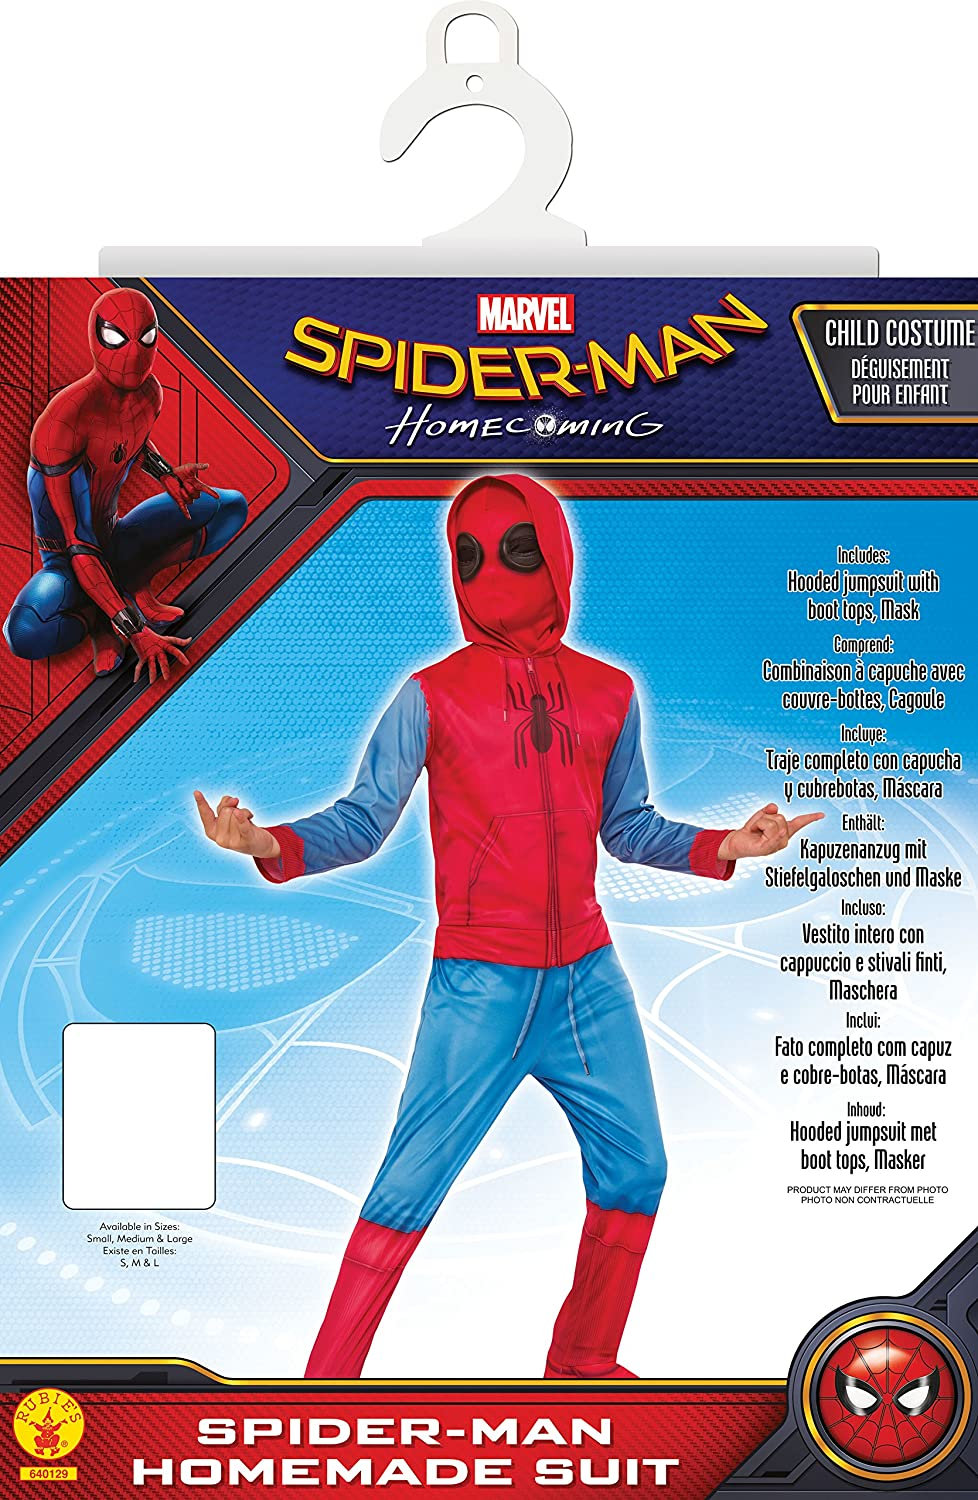 Amazon.com: Rubies Spider-Man: Homecoming Childs Homemade Suit Costume, Small: Toys & Games